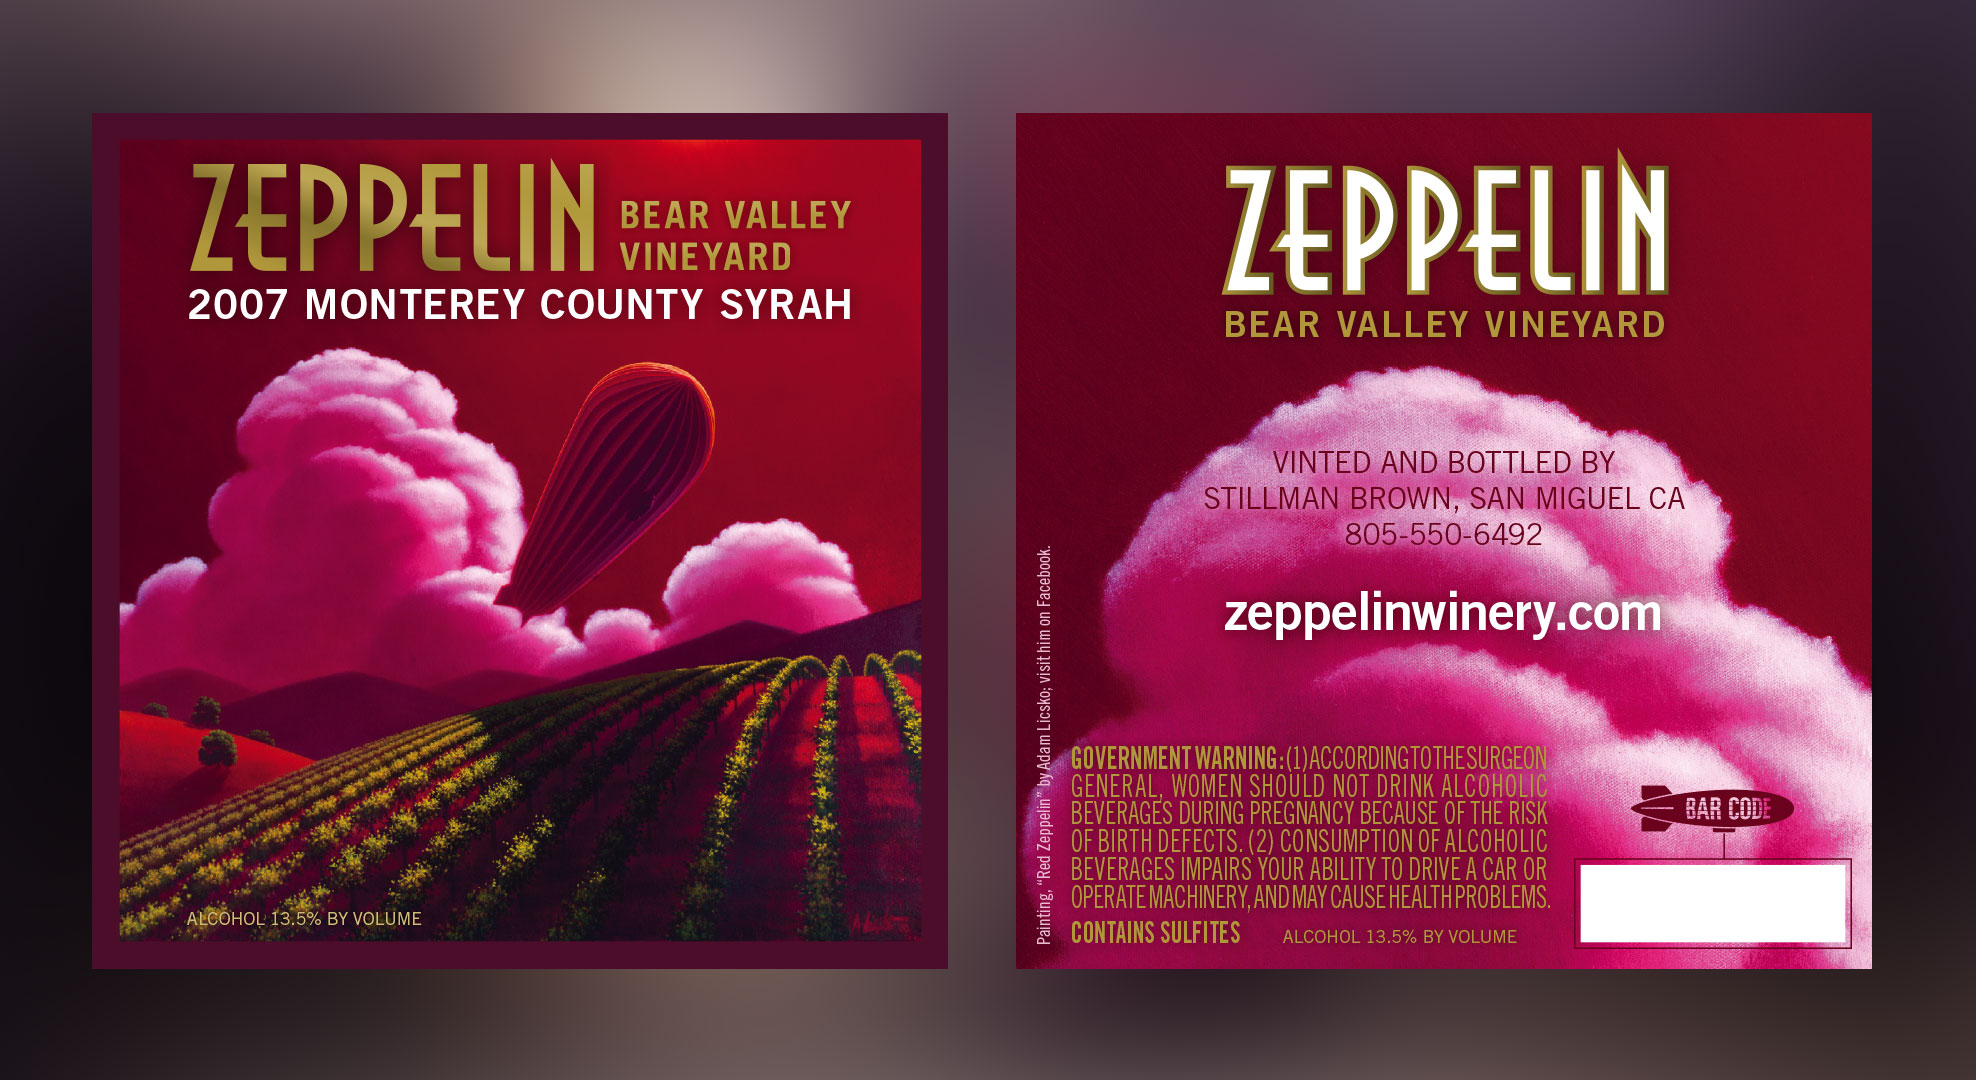 Vintner, Stillman Brown (a.k.a. Swillyidle) of northern California, asked if we would design the Red Zeppelin label for his 2007 Monterey County Syrah. He then asked if we would consider compensation in trade. We accepted his proposal and thoroughly enjoyed the liquid asset.